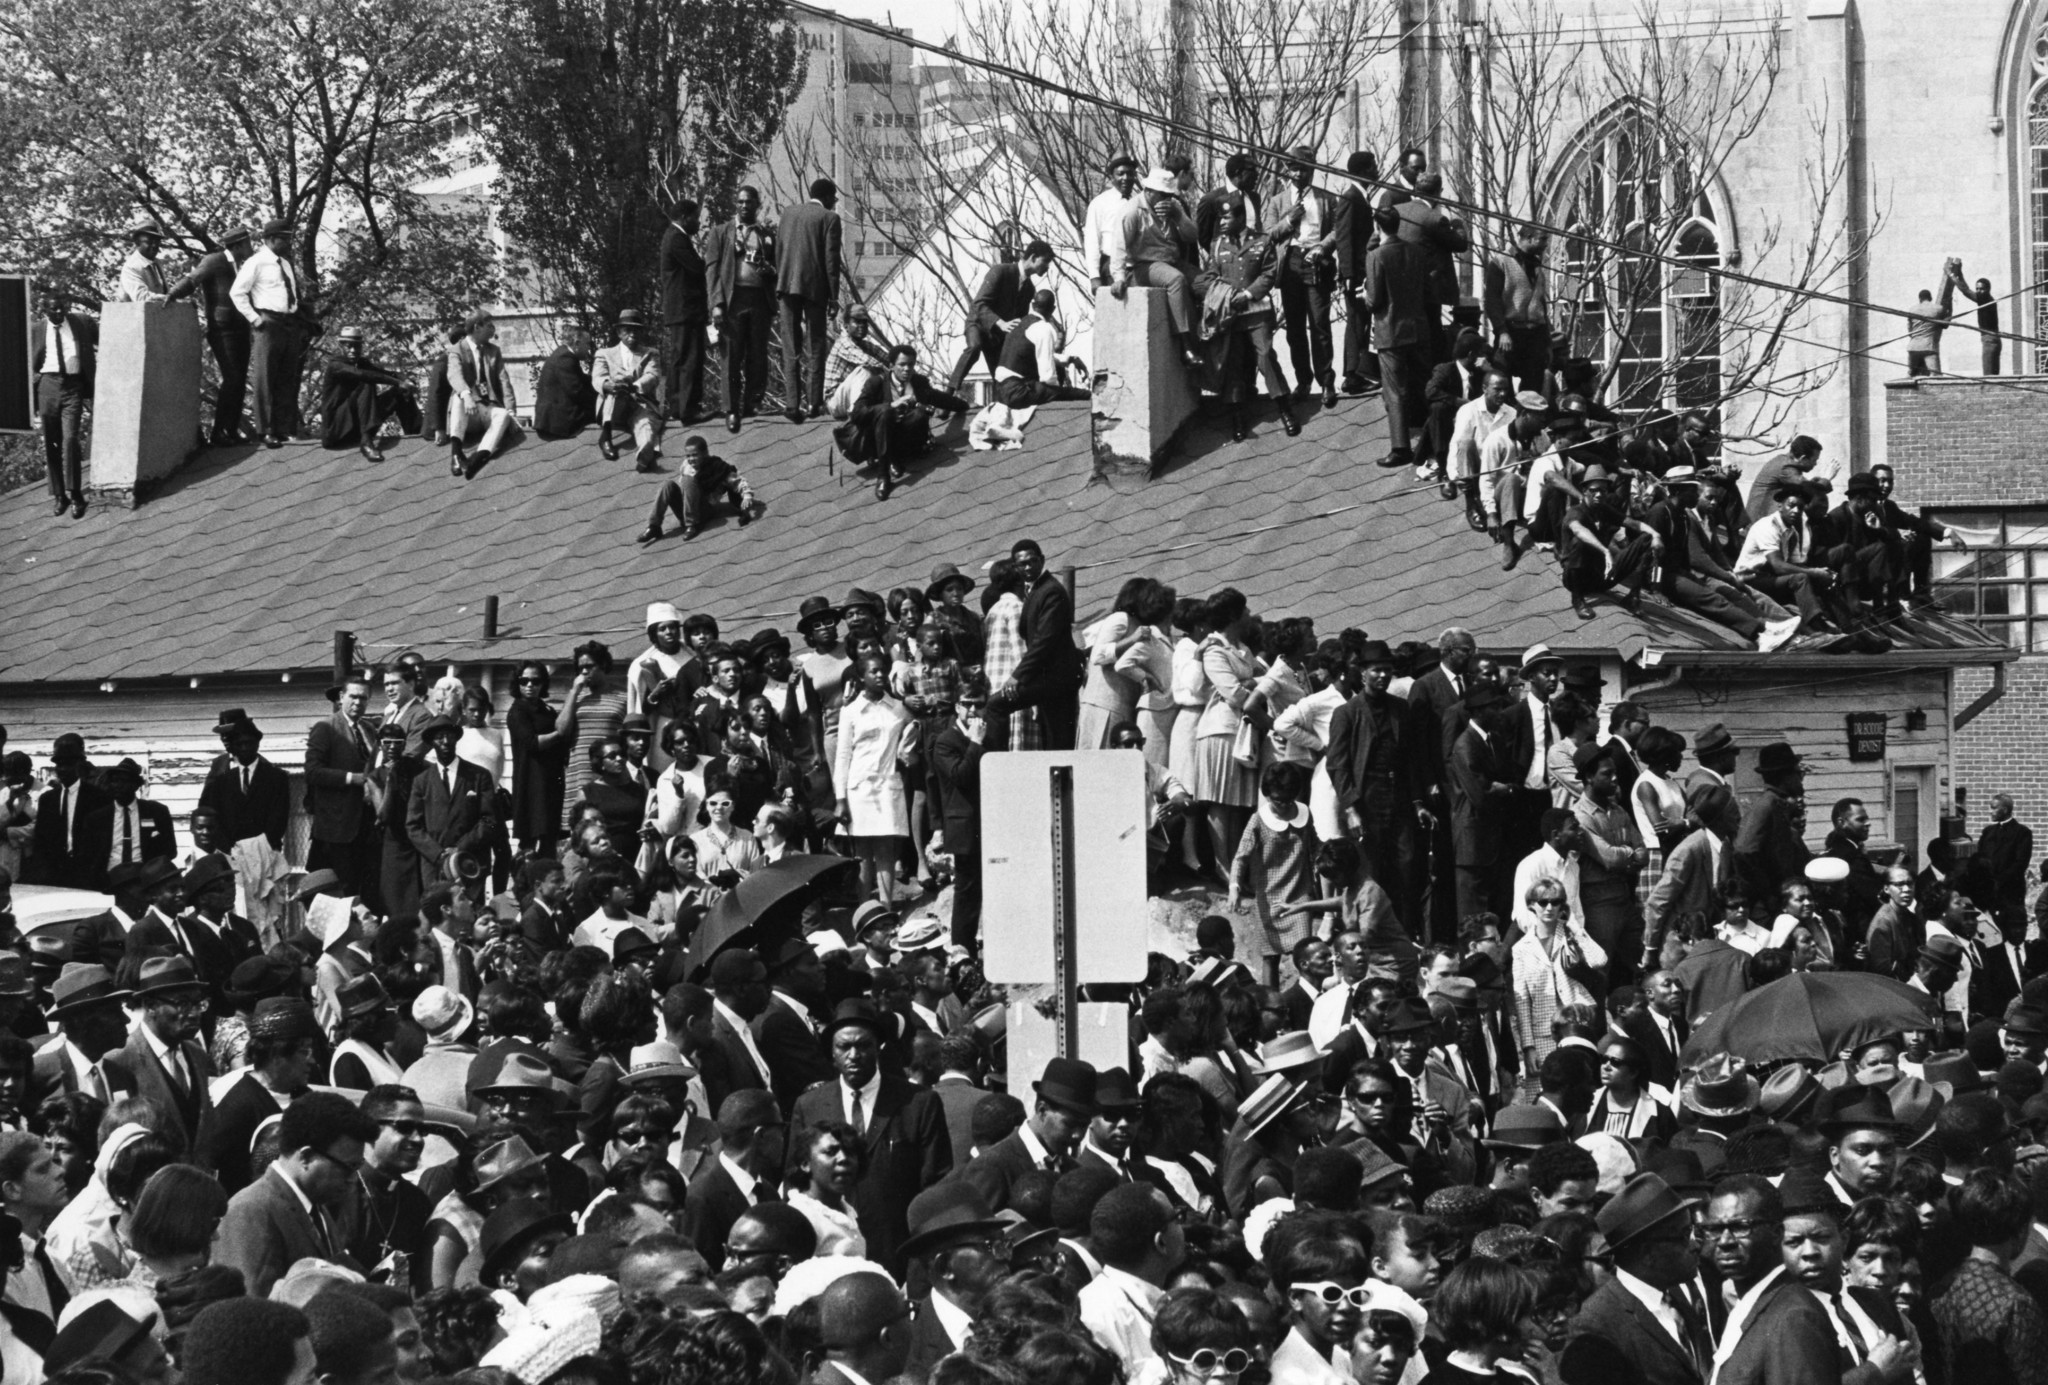 Crowds gather on rooftops near Ebenezer Church in Atlanta during the funeral service of Dr. Martin L